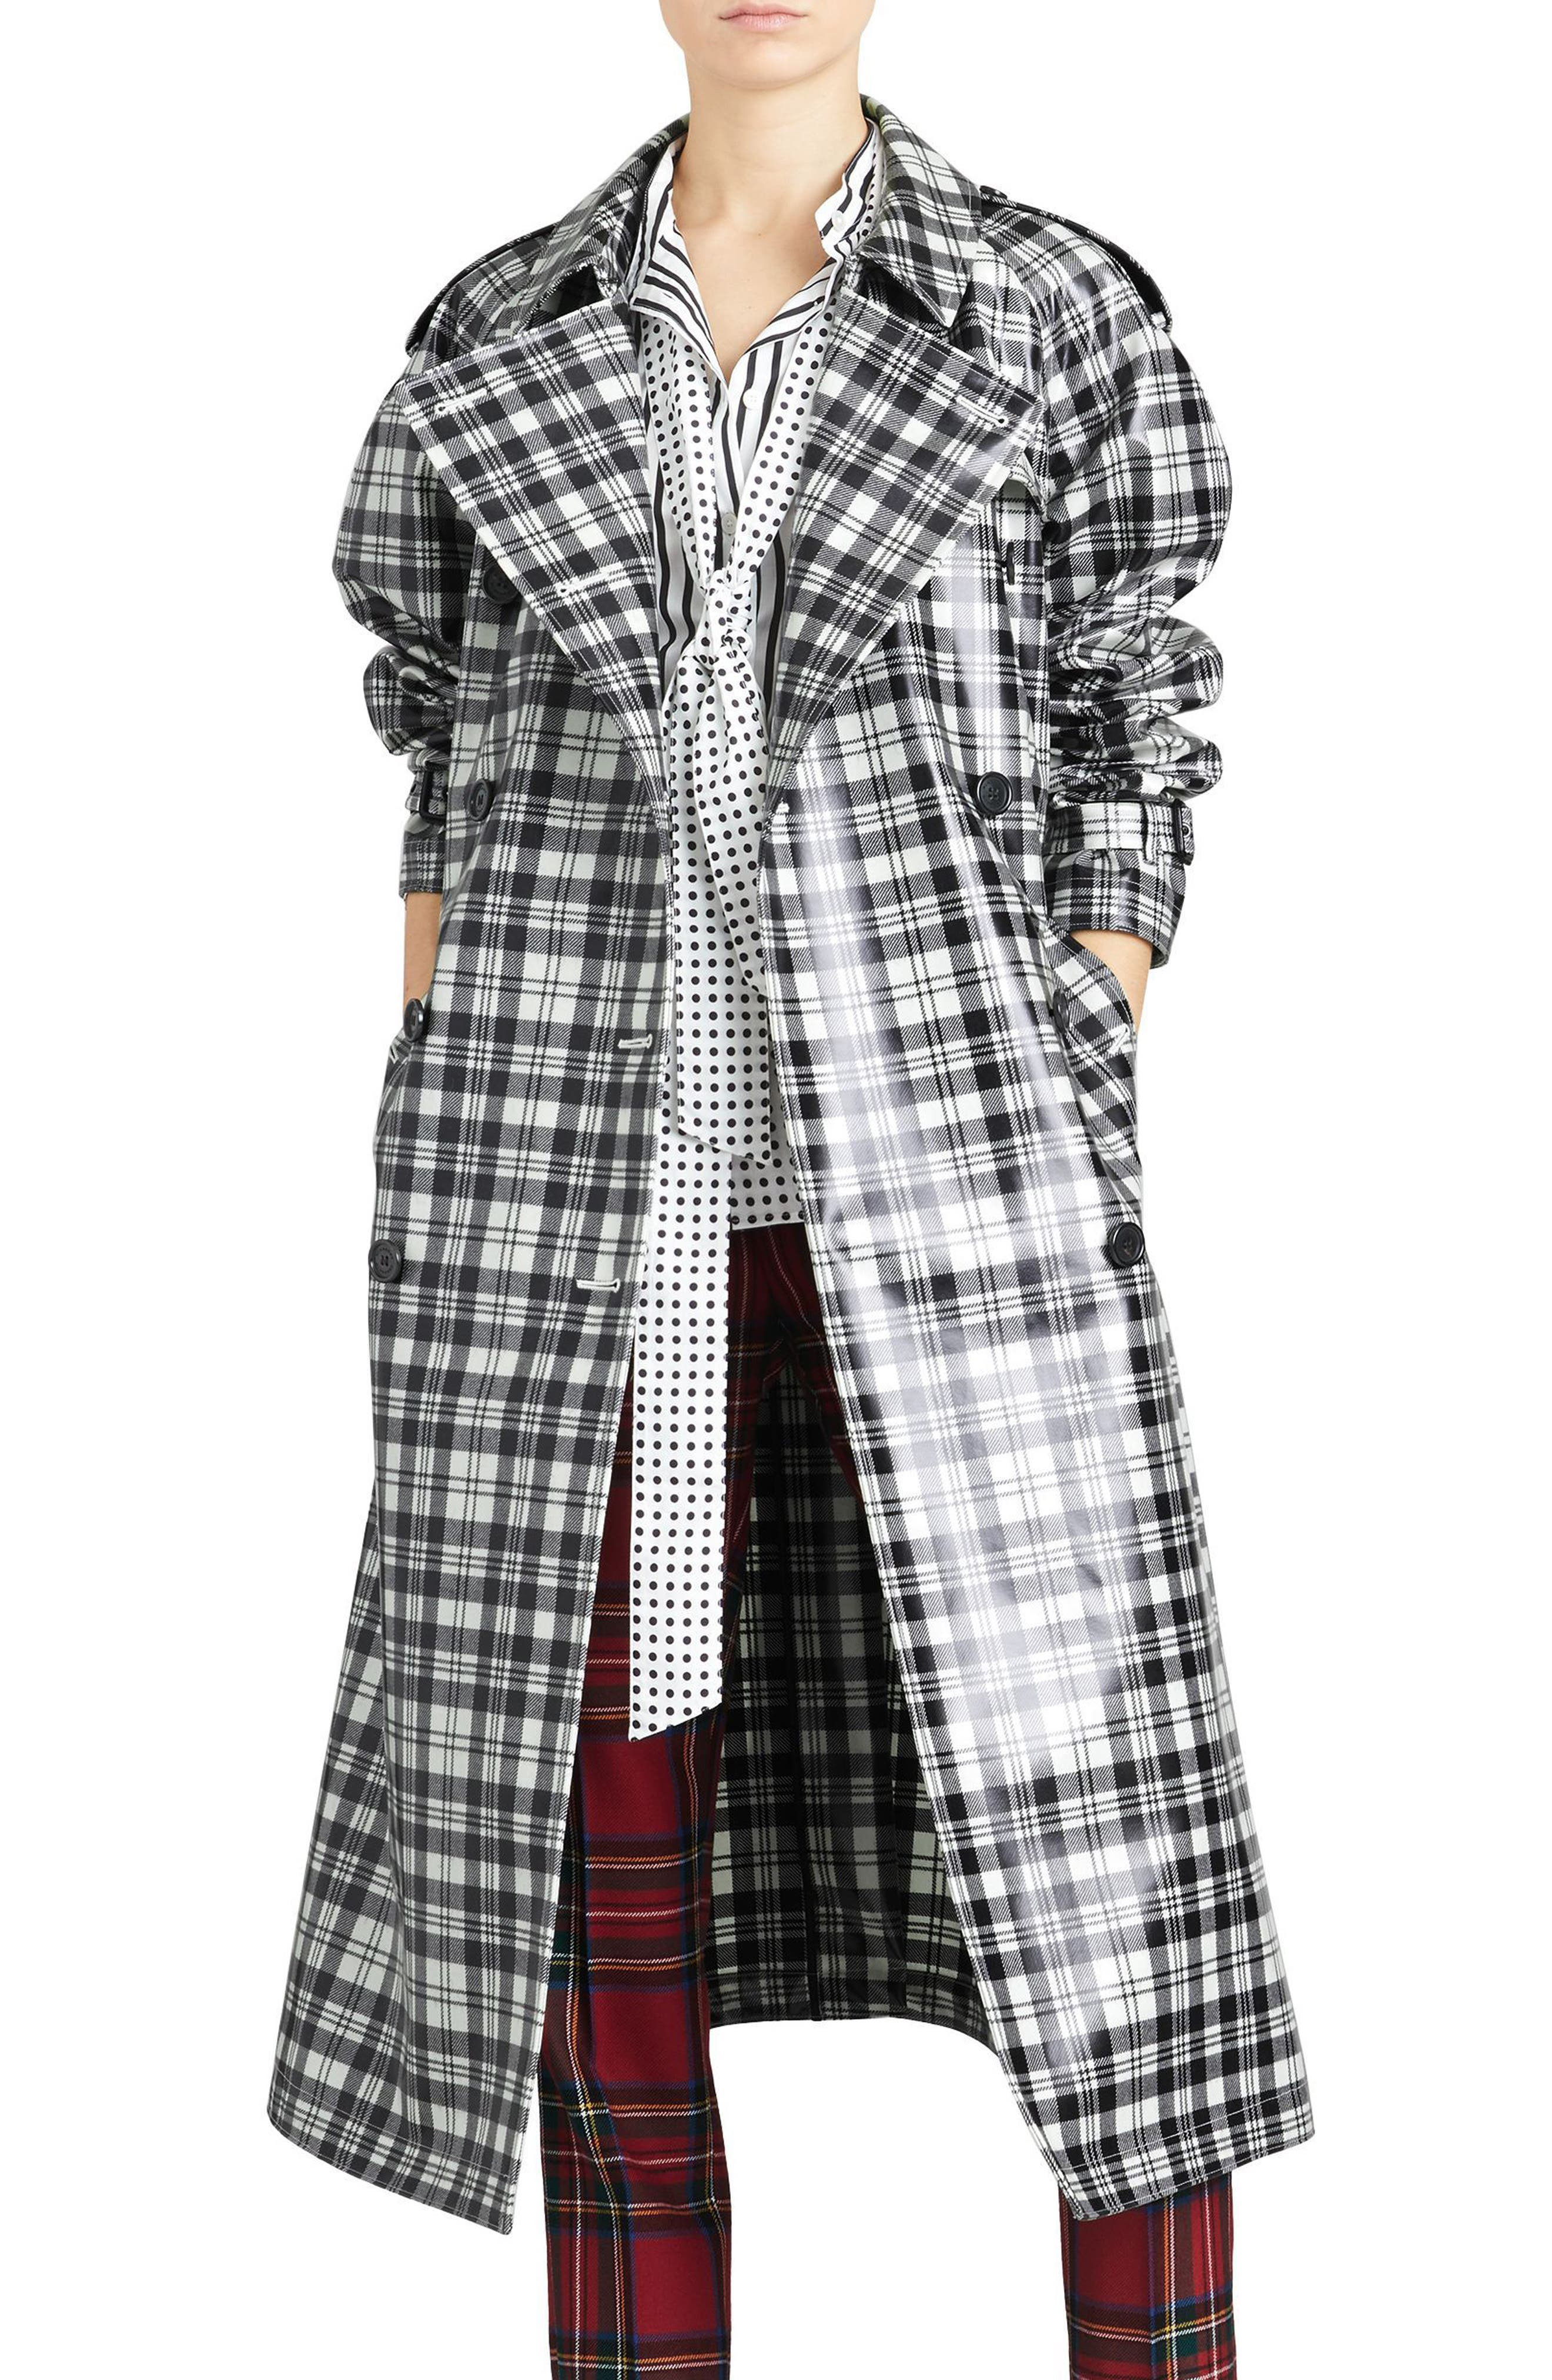 Eastheath Plaid Coated Wool Trench Coat,                             Main thumbnail 1, color,                             Black/ White